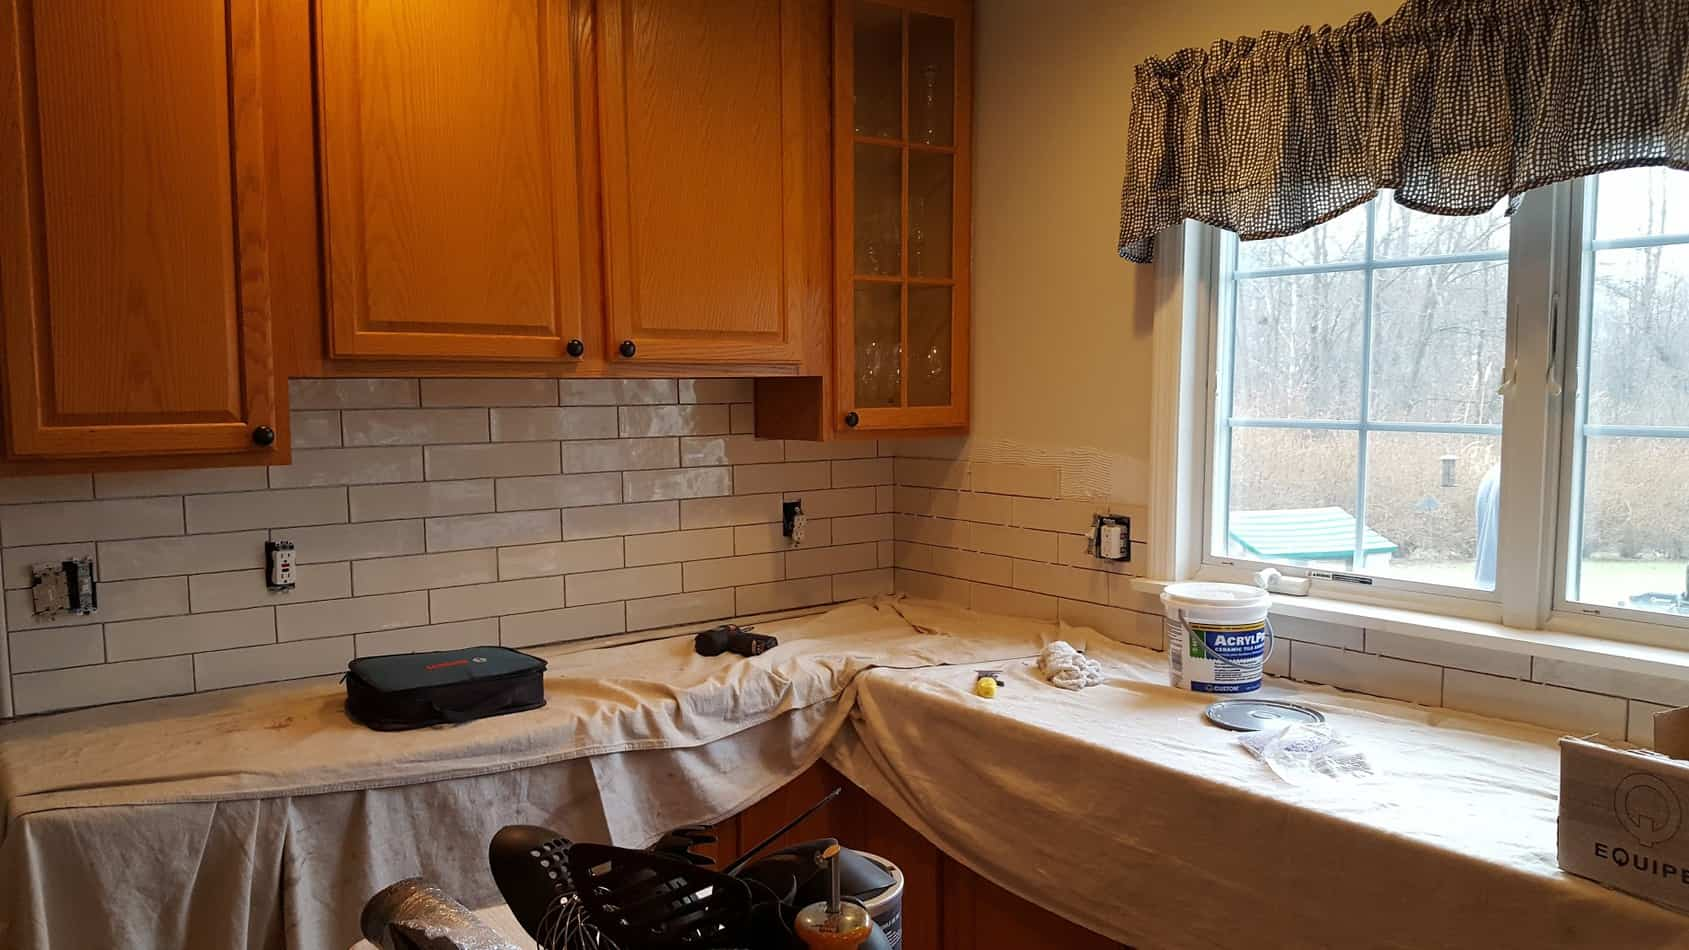 Update Kitchen w/ Oak Cabinets w/out painting, subway tile